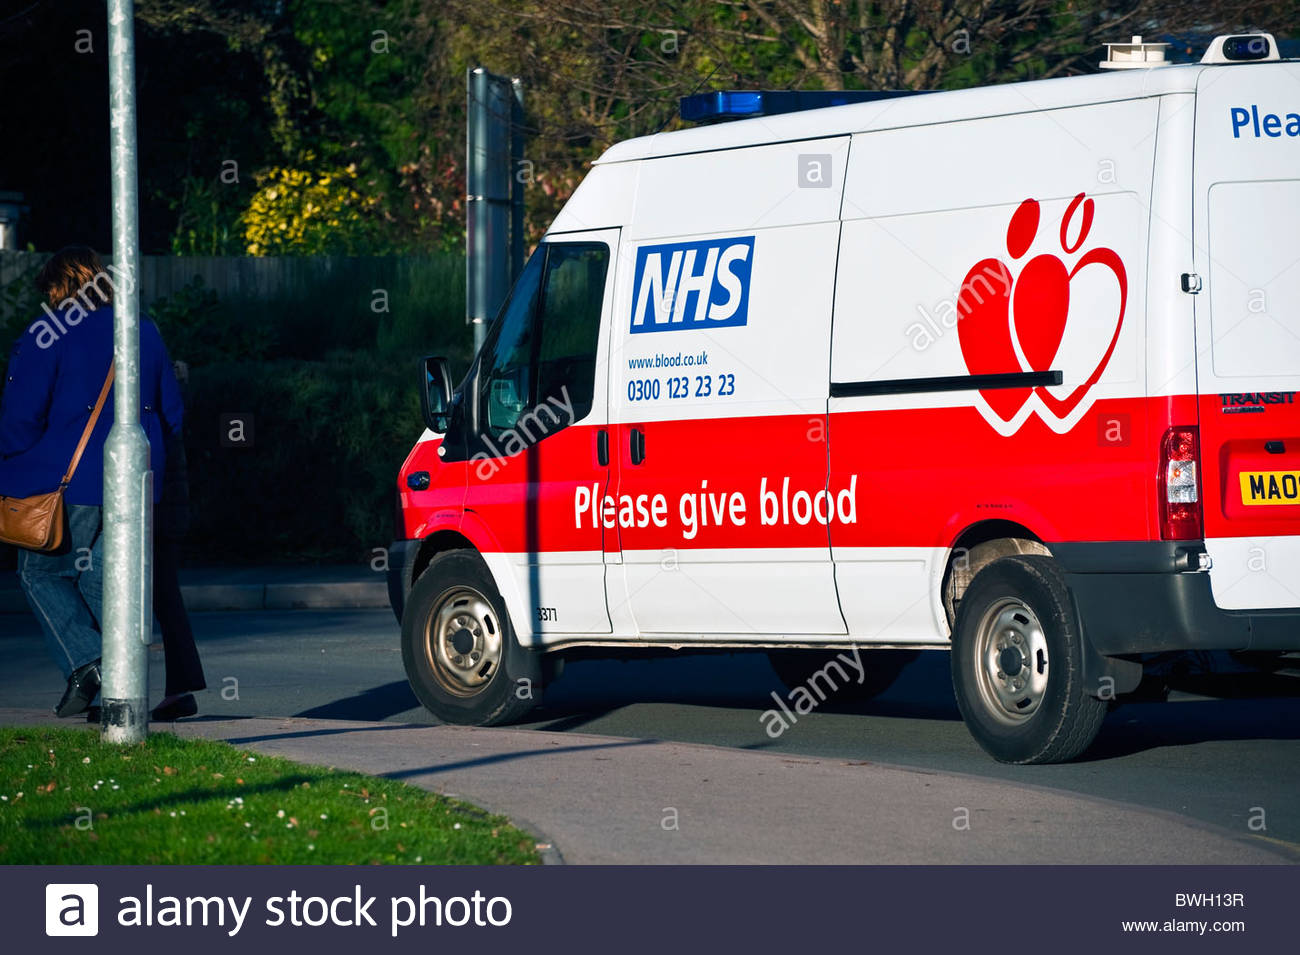 give blood stock photos amp give blood stock images alamy